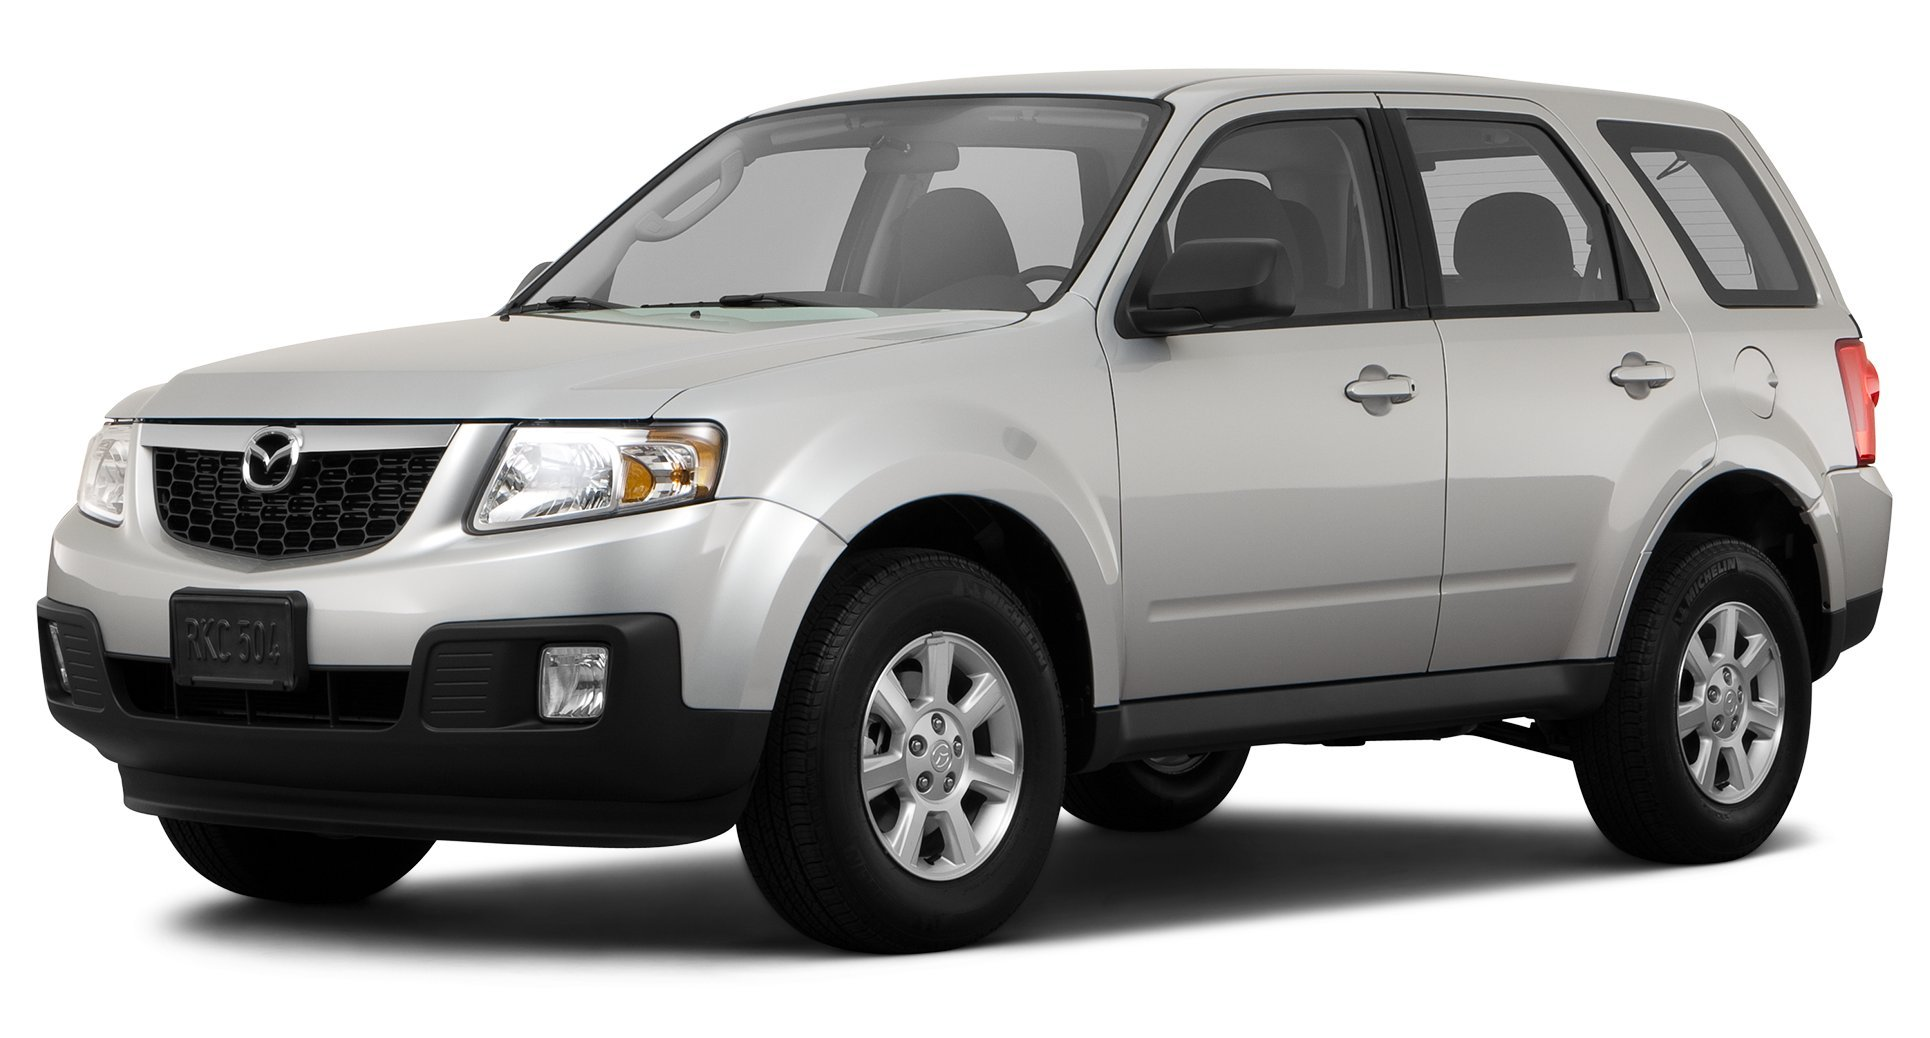 2011 toyota fj cruiser reviews images and specs vehicles. Black Bedroom Furniture Sets. Home Design Ideas